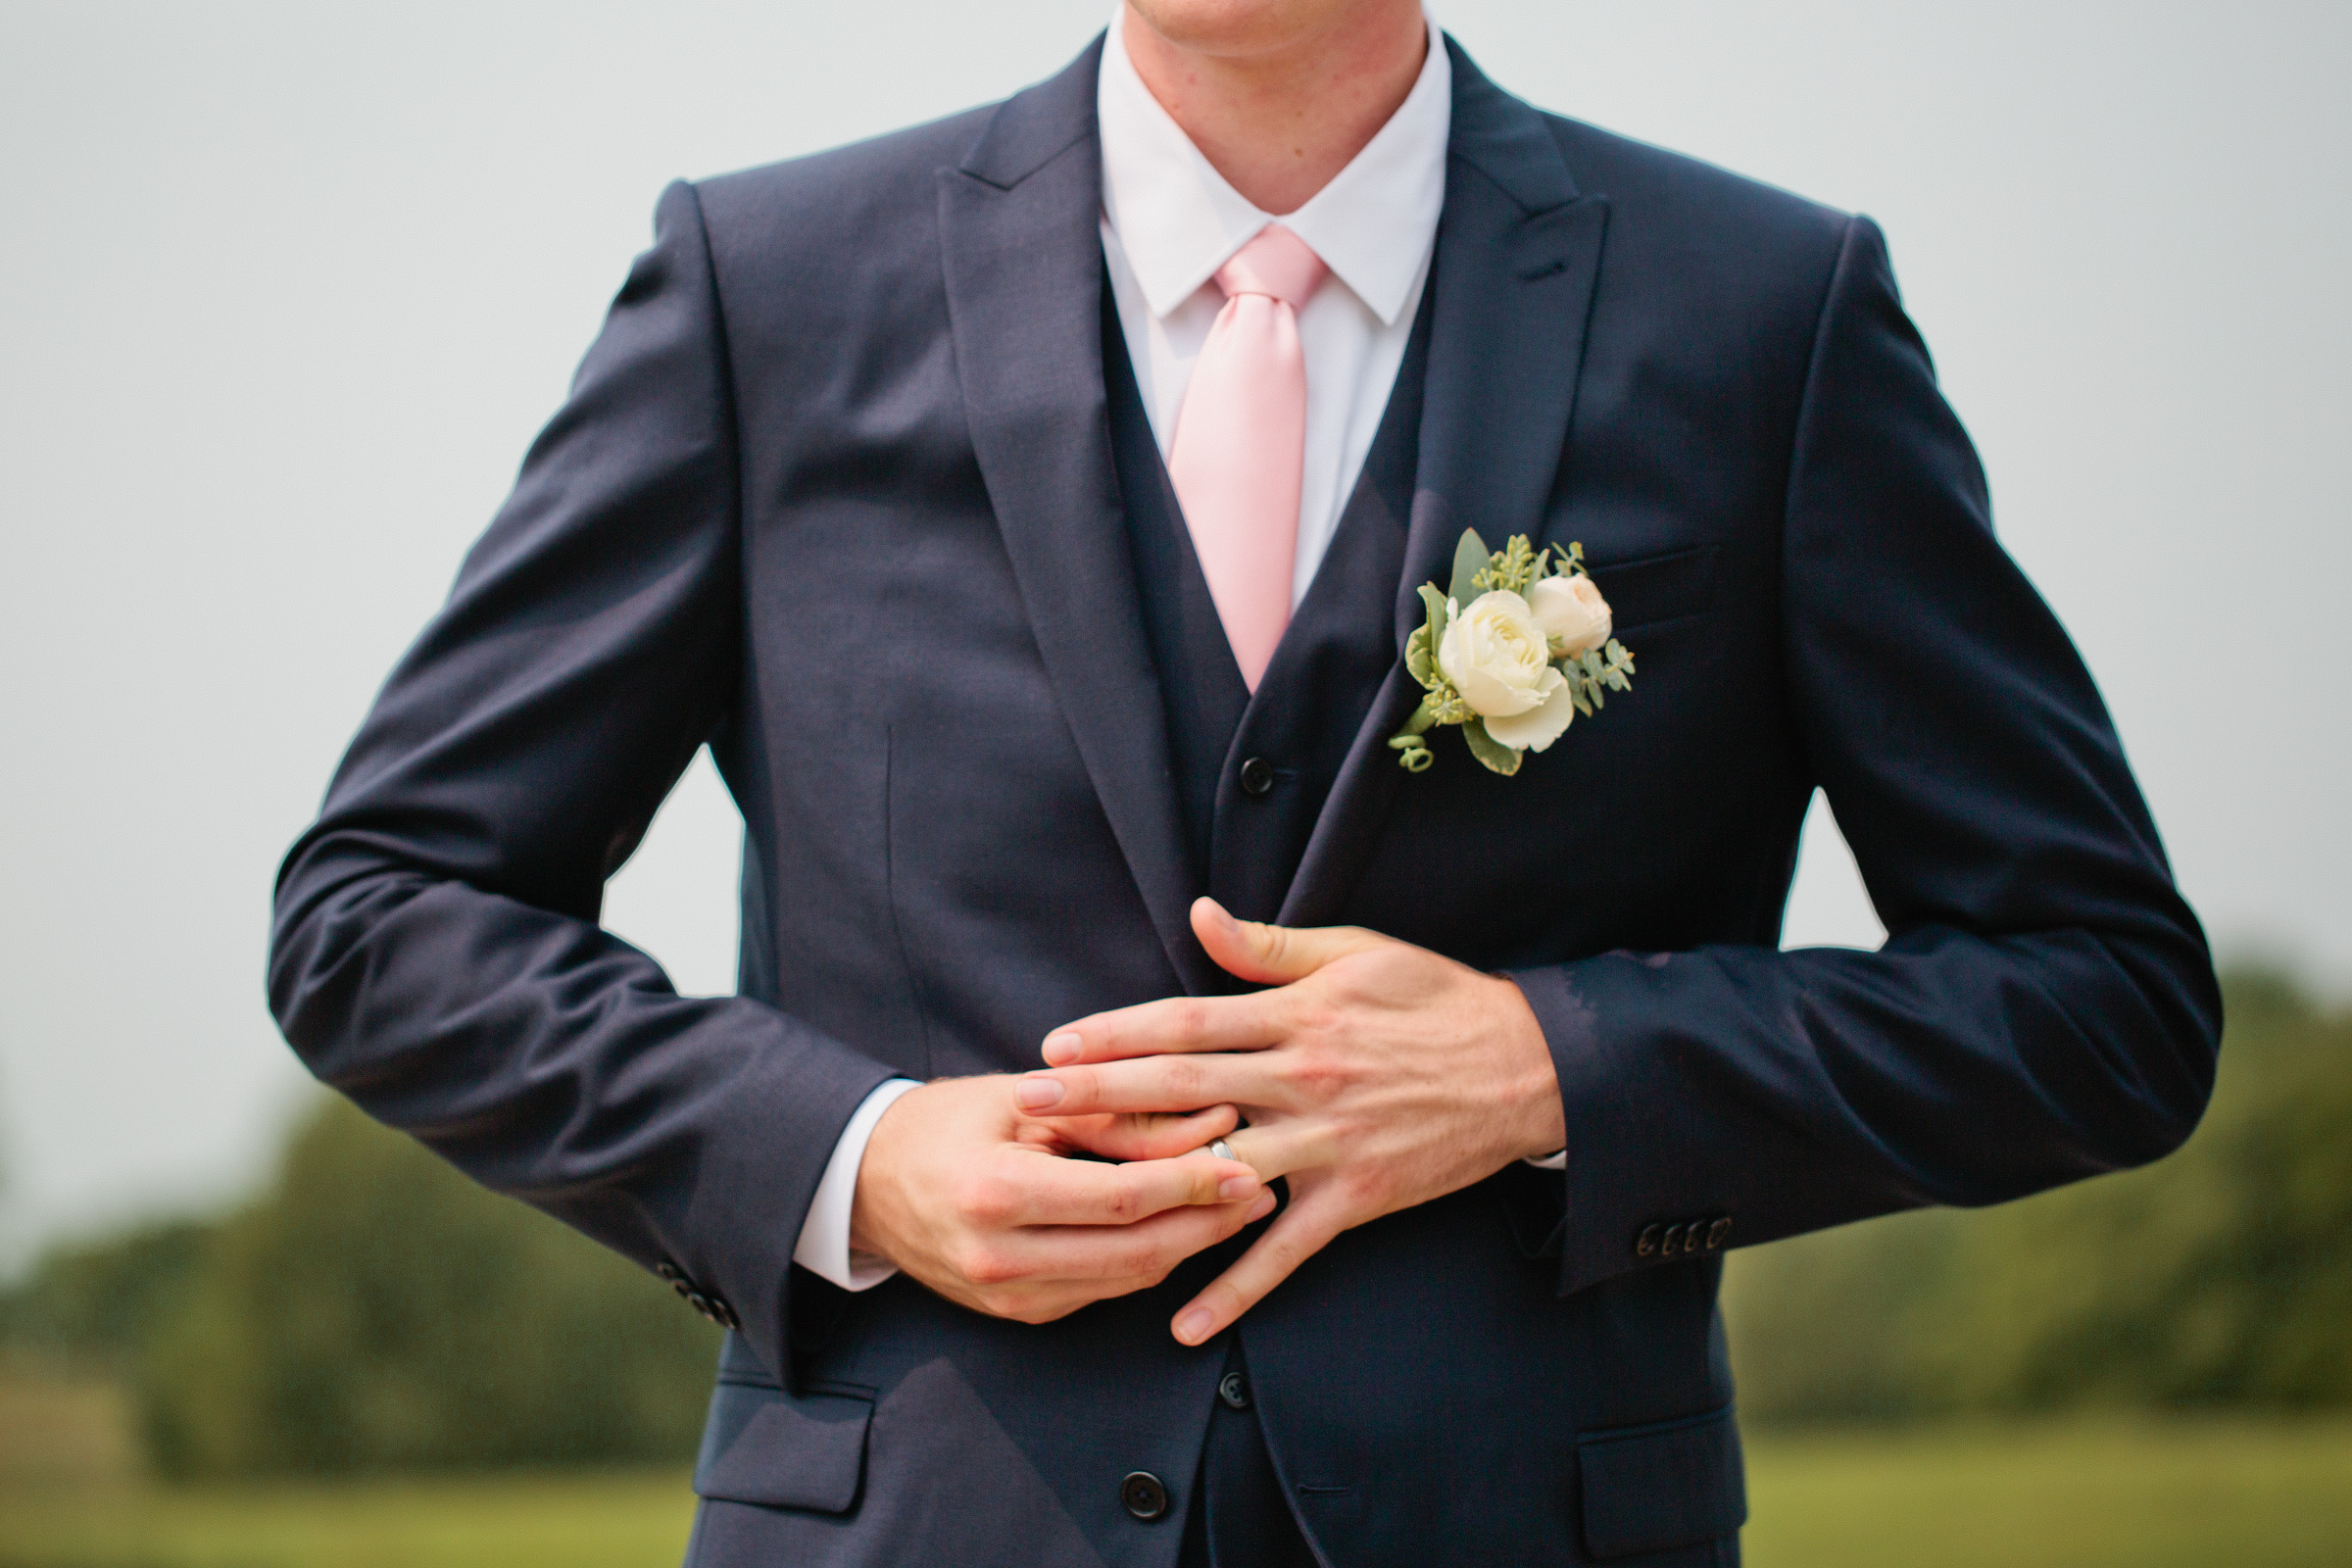 groom in navy suit and pink tie fiddling with wedding ring